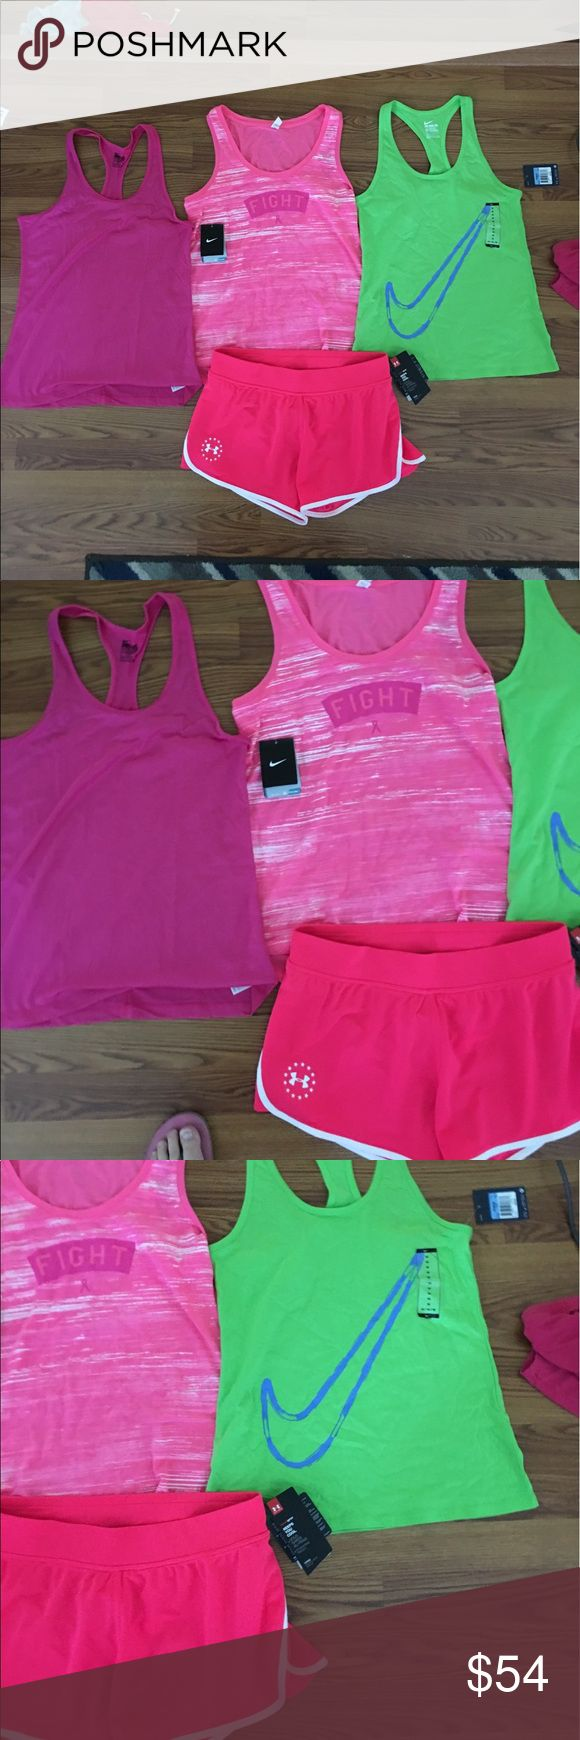 NWT women's medium workout clothing bundle! New with tags women's size medium workout clothing bundle! Bundle includes: two Nike tanks, 1 under Armour tank and one pair of freedom under armor shorts! Price is for all. Under Armour Tops Tank Tops